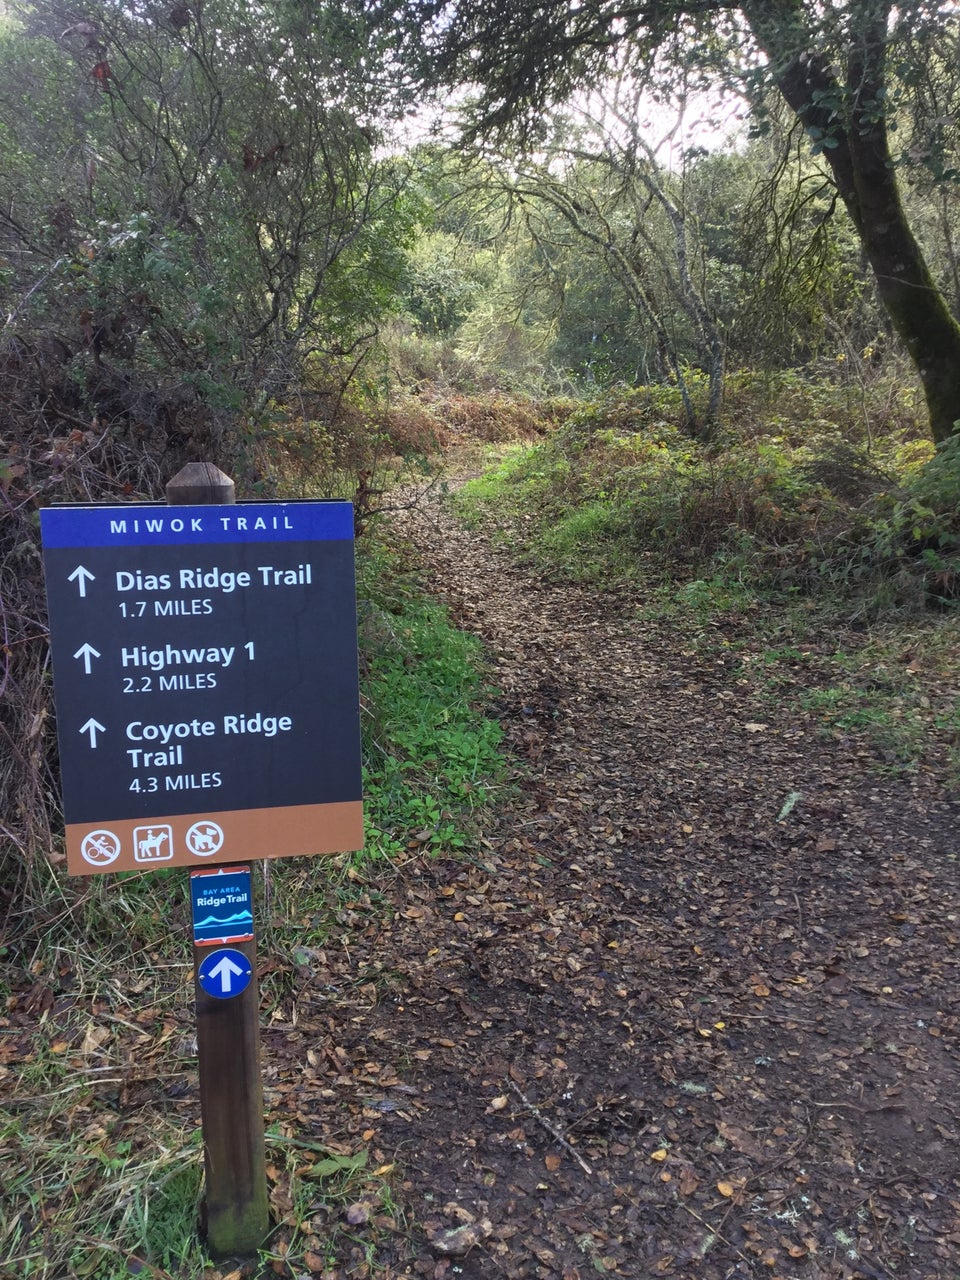 Miwok Trail sign, noting destinations and distances, a smooth trail covered in brown leaves winding up and away, with green grash and bushes on either side, shaded by trees.